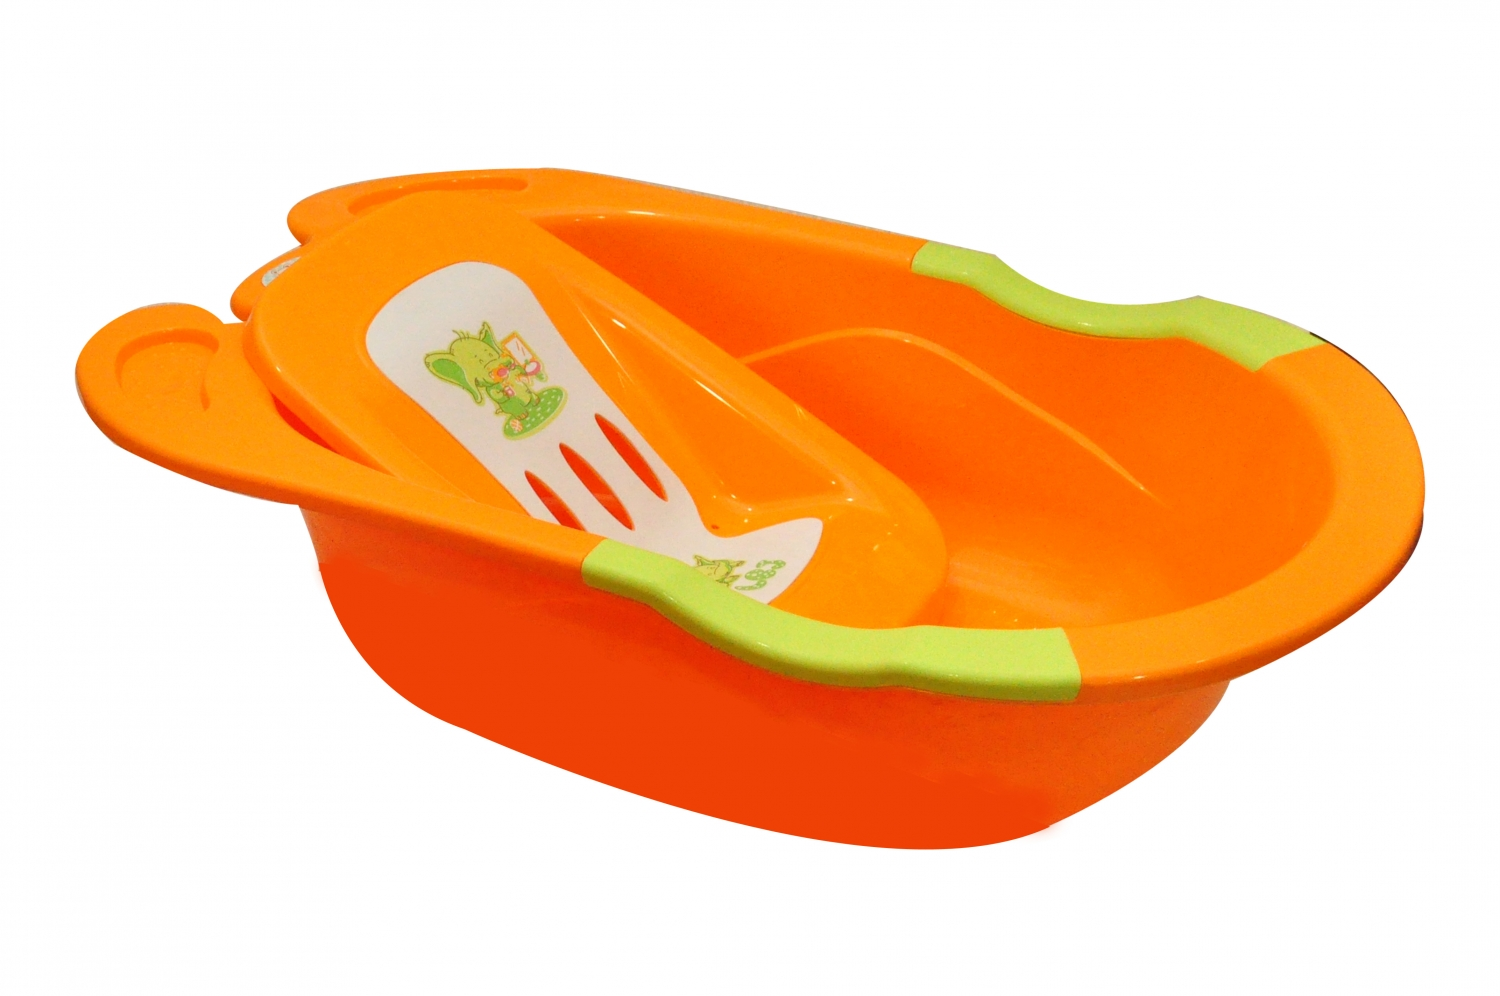 Bath Tub Orange - Baby Needs - Bath Tubs - Baby Lou - Baby Products ...